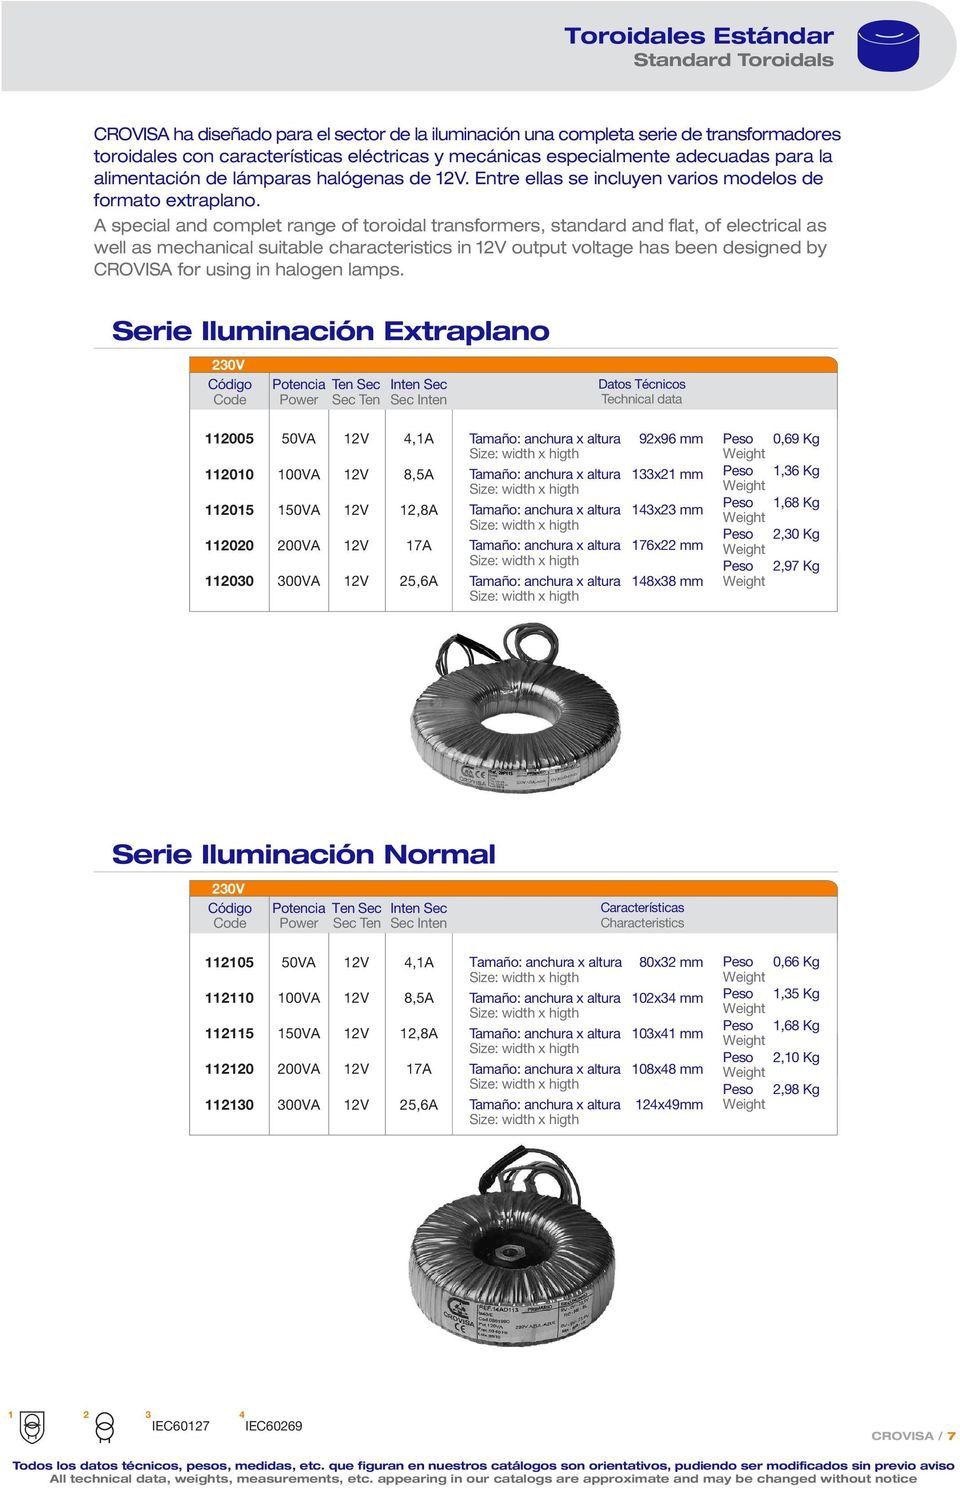 A special and complet range of toroidal transformers, standard and flat, of electrical as well as mechanical suitable characteristics in 12V output voltage has been designed by CROVISA for using in